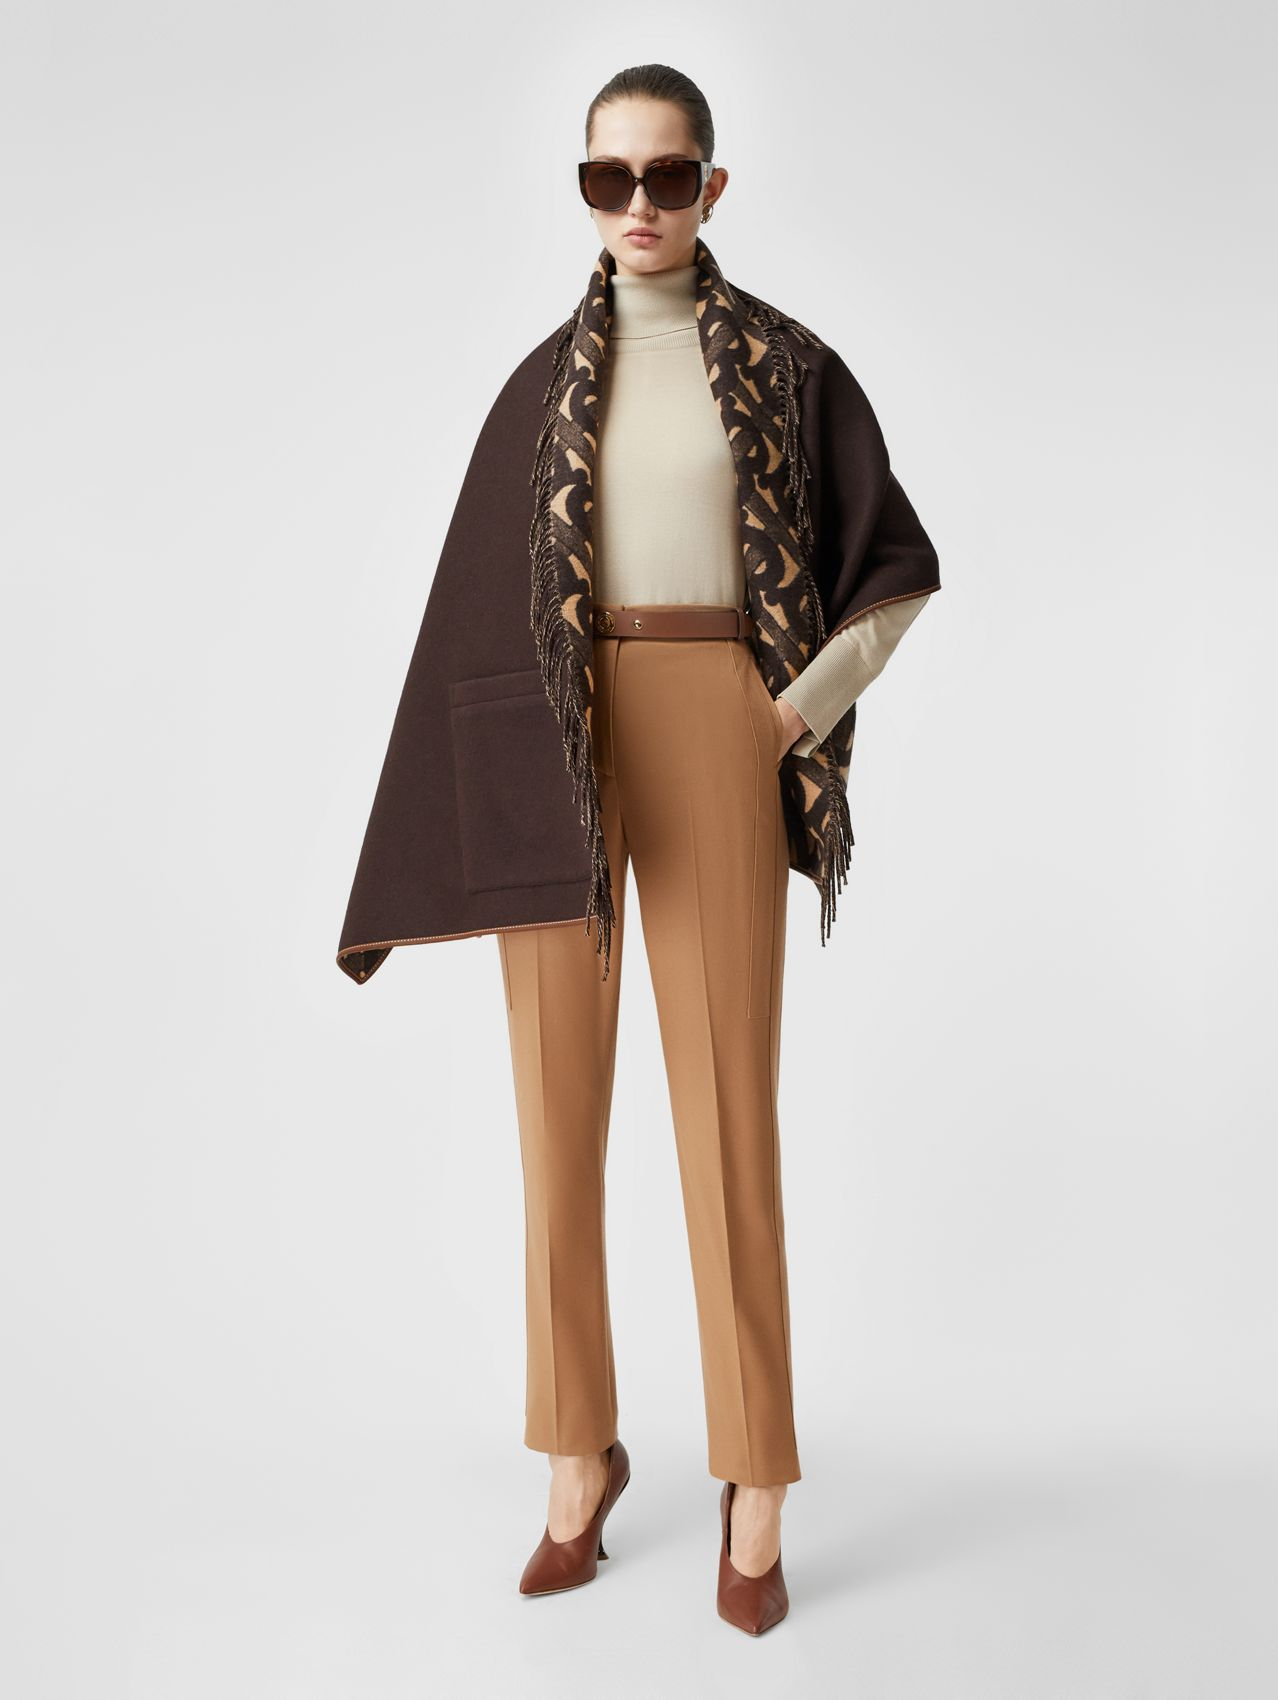 Monogram Merino Wool Cashmere Jacquard Cape in Deep Brown